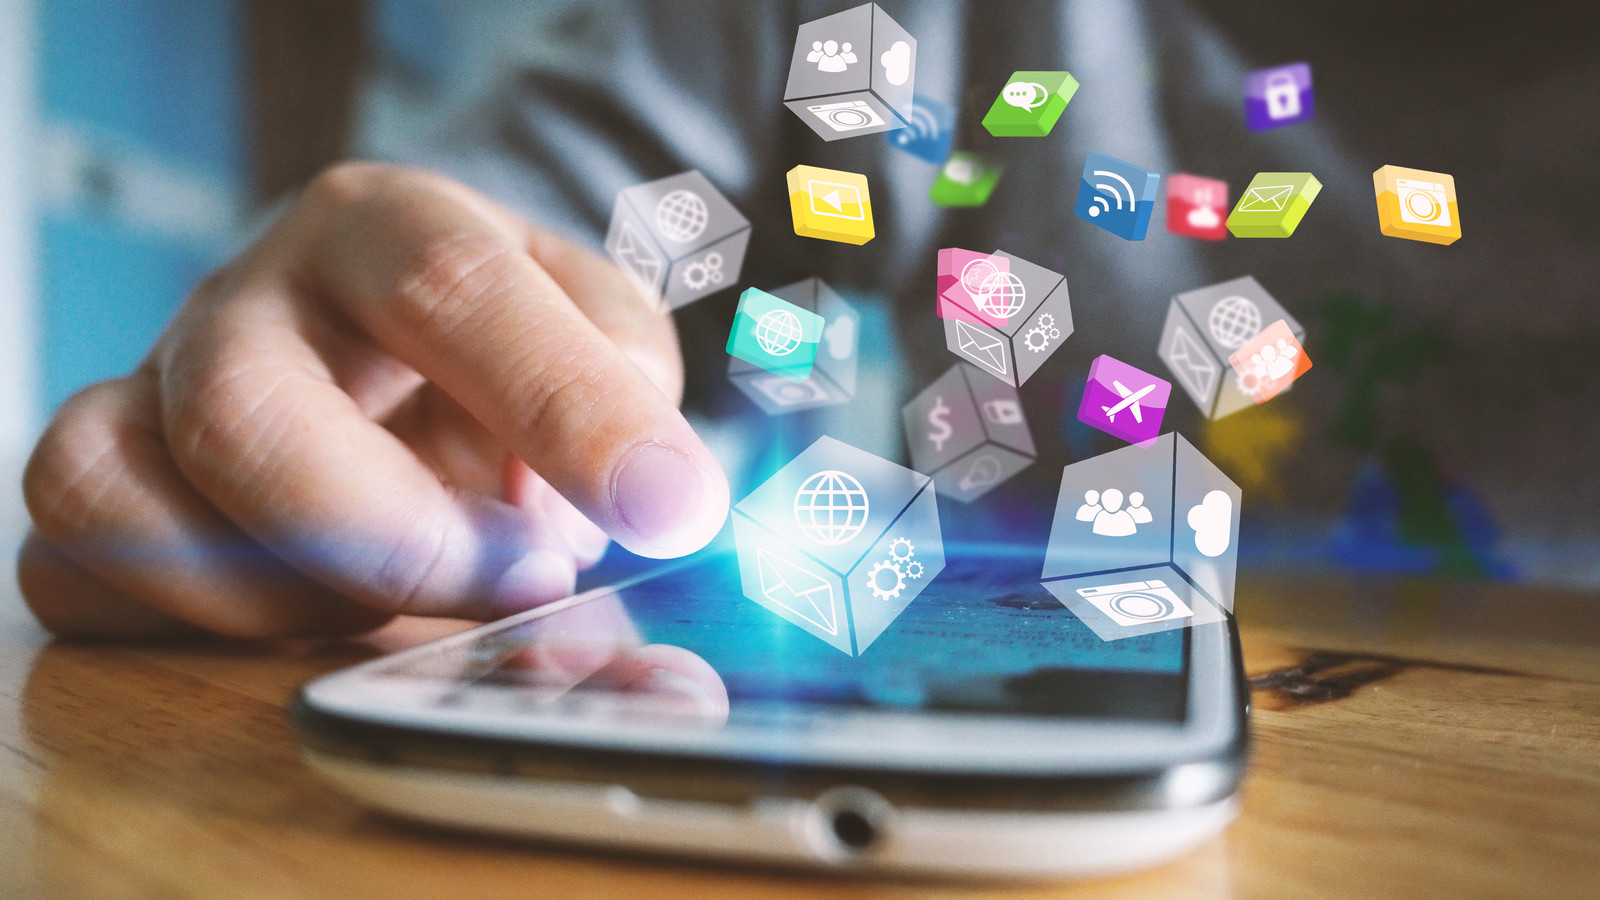 7 trends that define the future of social media marketing